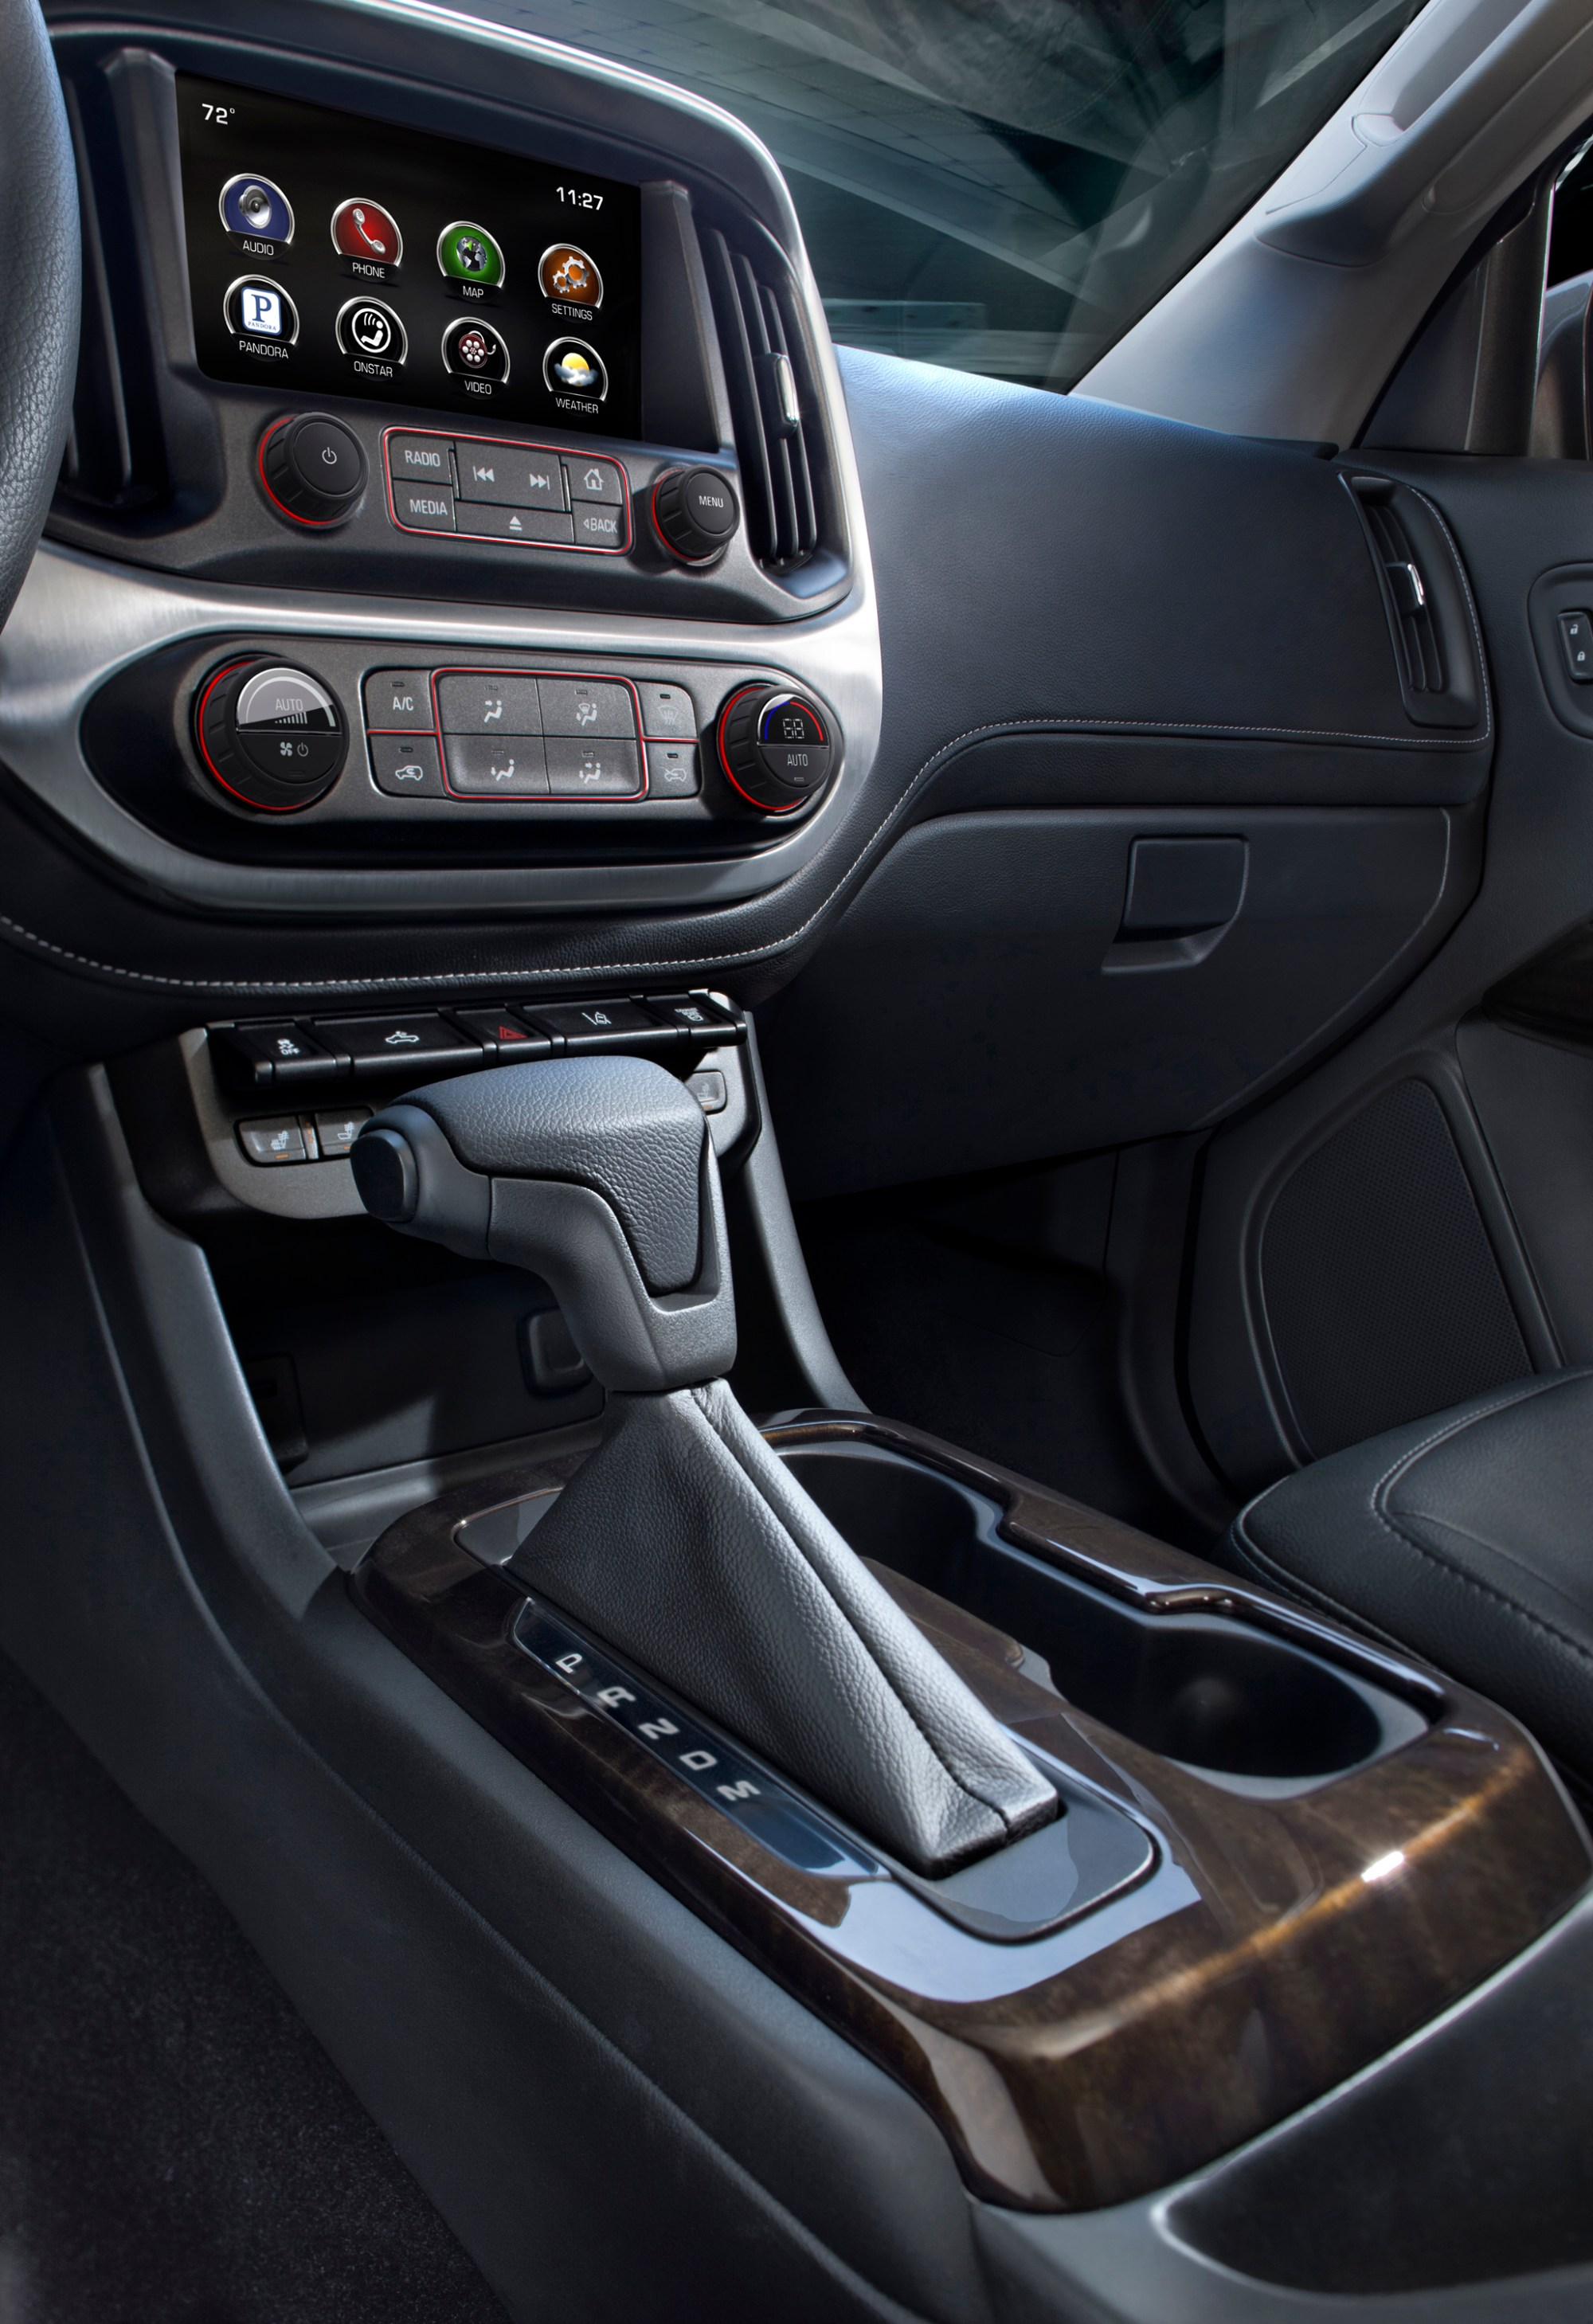 hight resolution of the all new 2015 gmc canyon s high level of customer focused technologies include an eight inch intellilink screen that will feature a new in car app